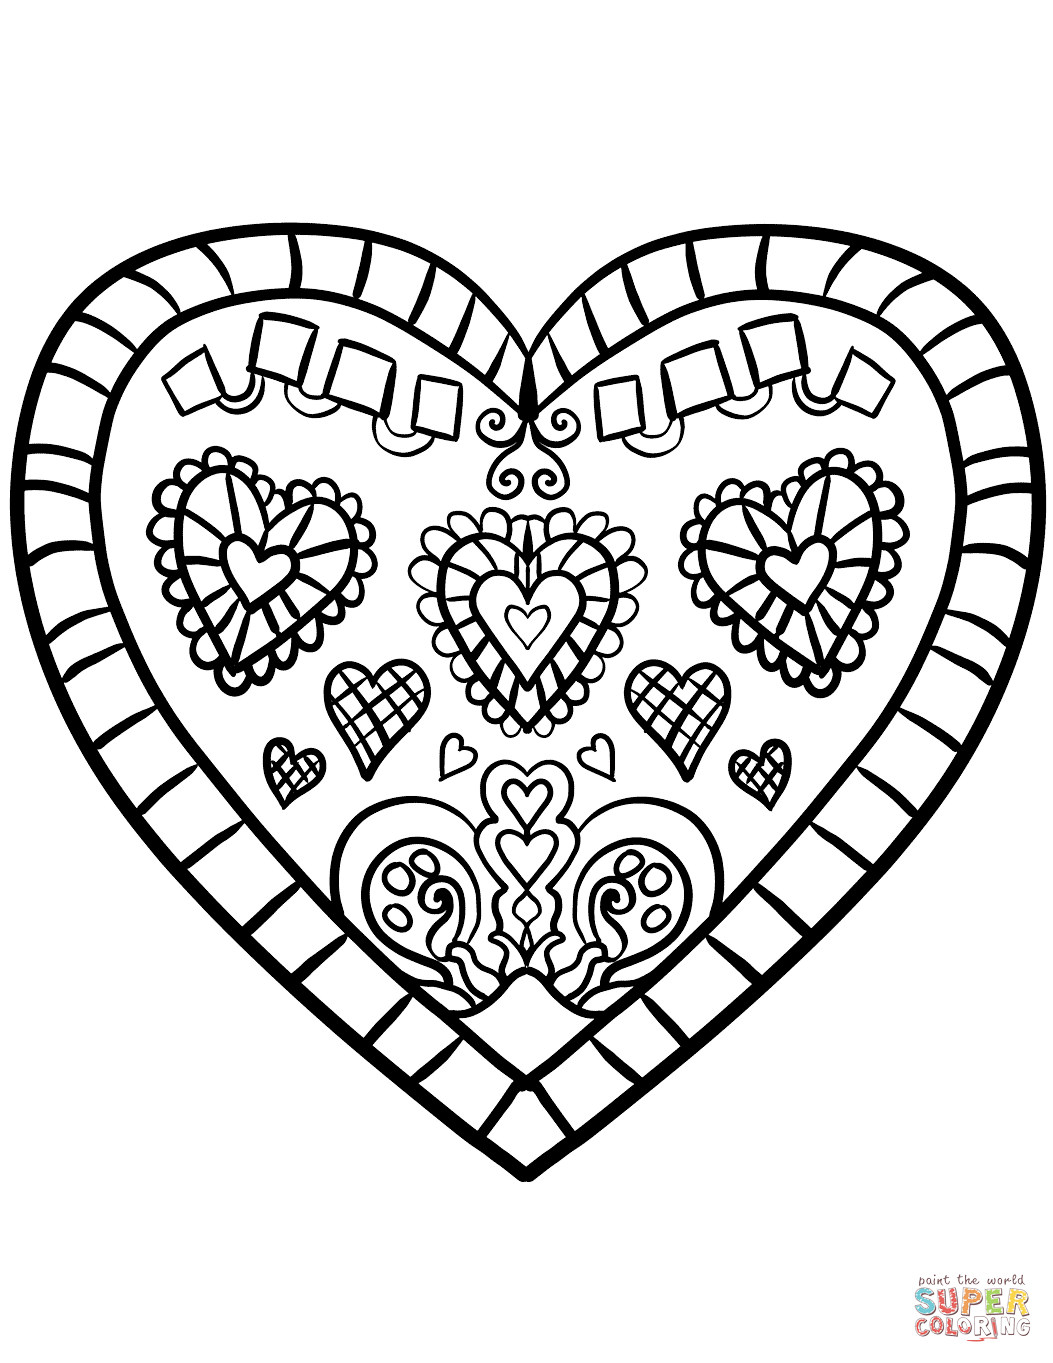 Valentines Day Hearts Coloring Pages Heart Coloring Pages Free Printable Pictures